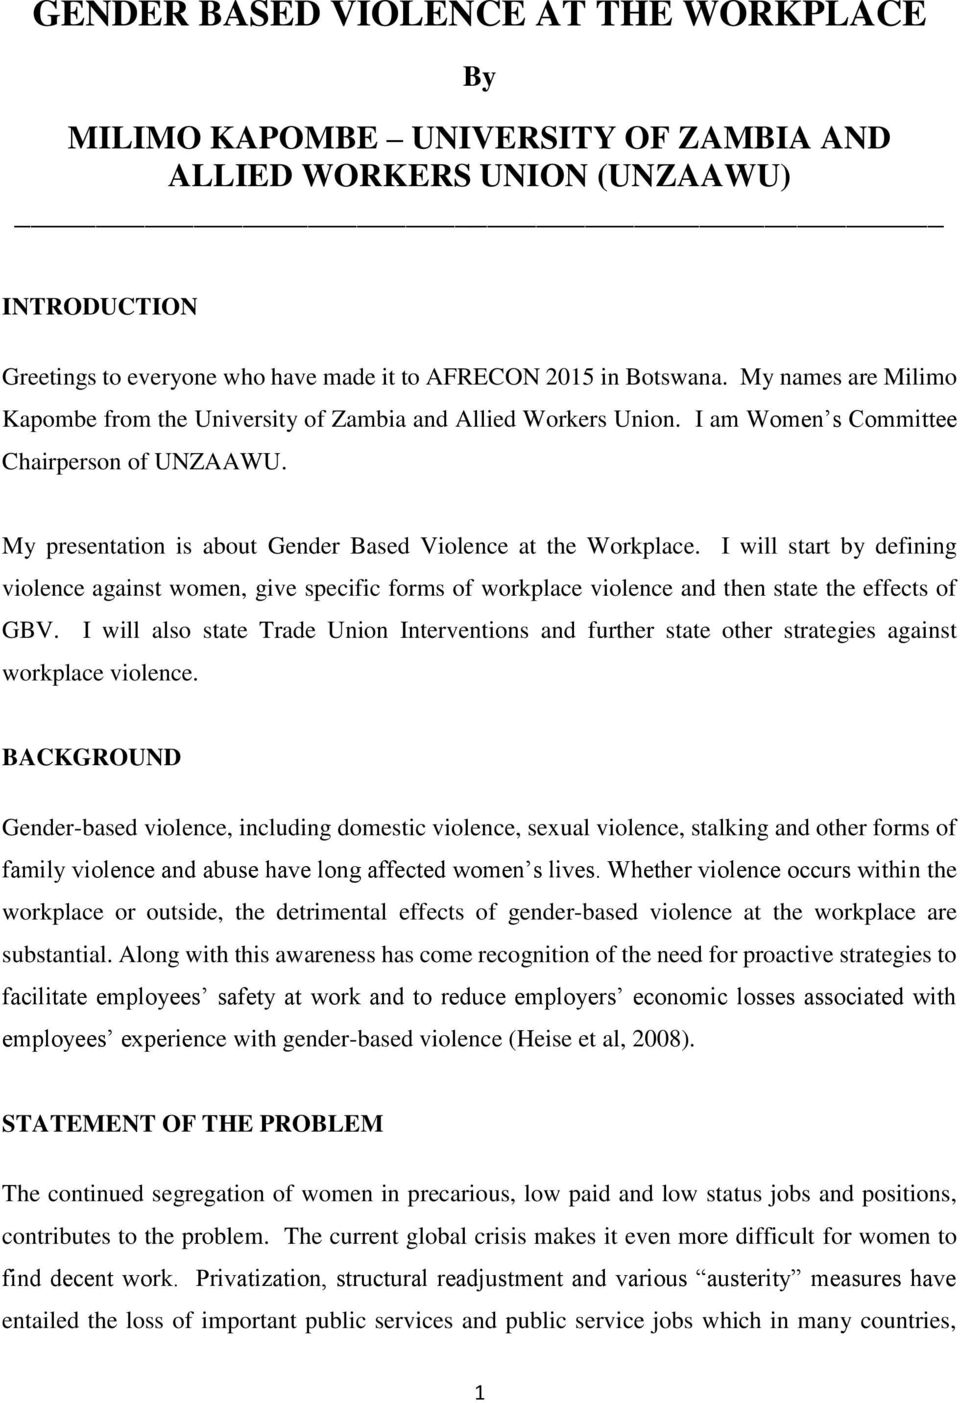 I will start by defining violence against women, give specific forms of workplace violence and then state the effects of GBV.